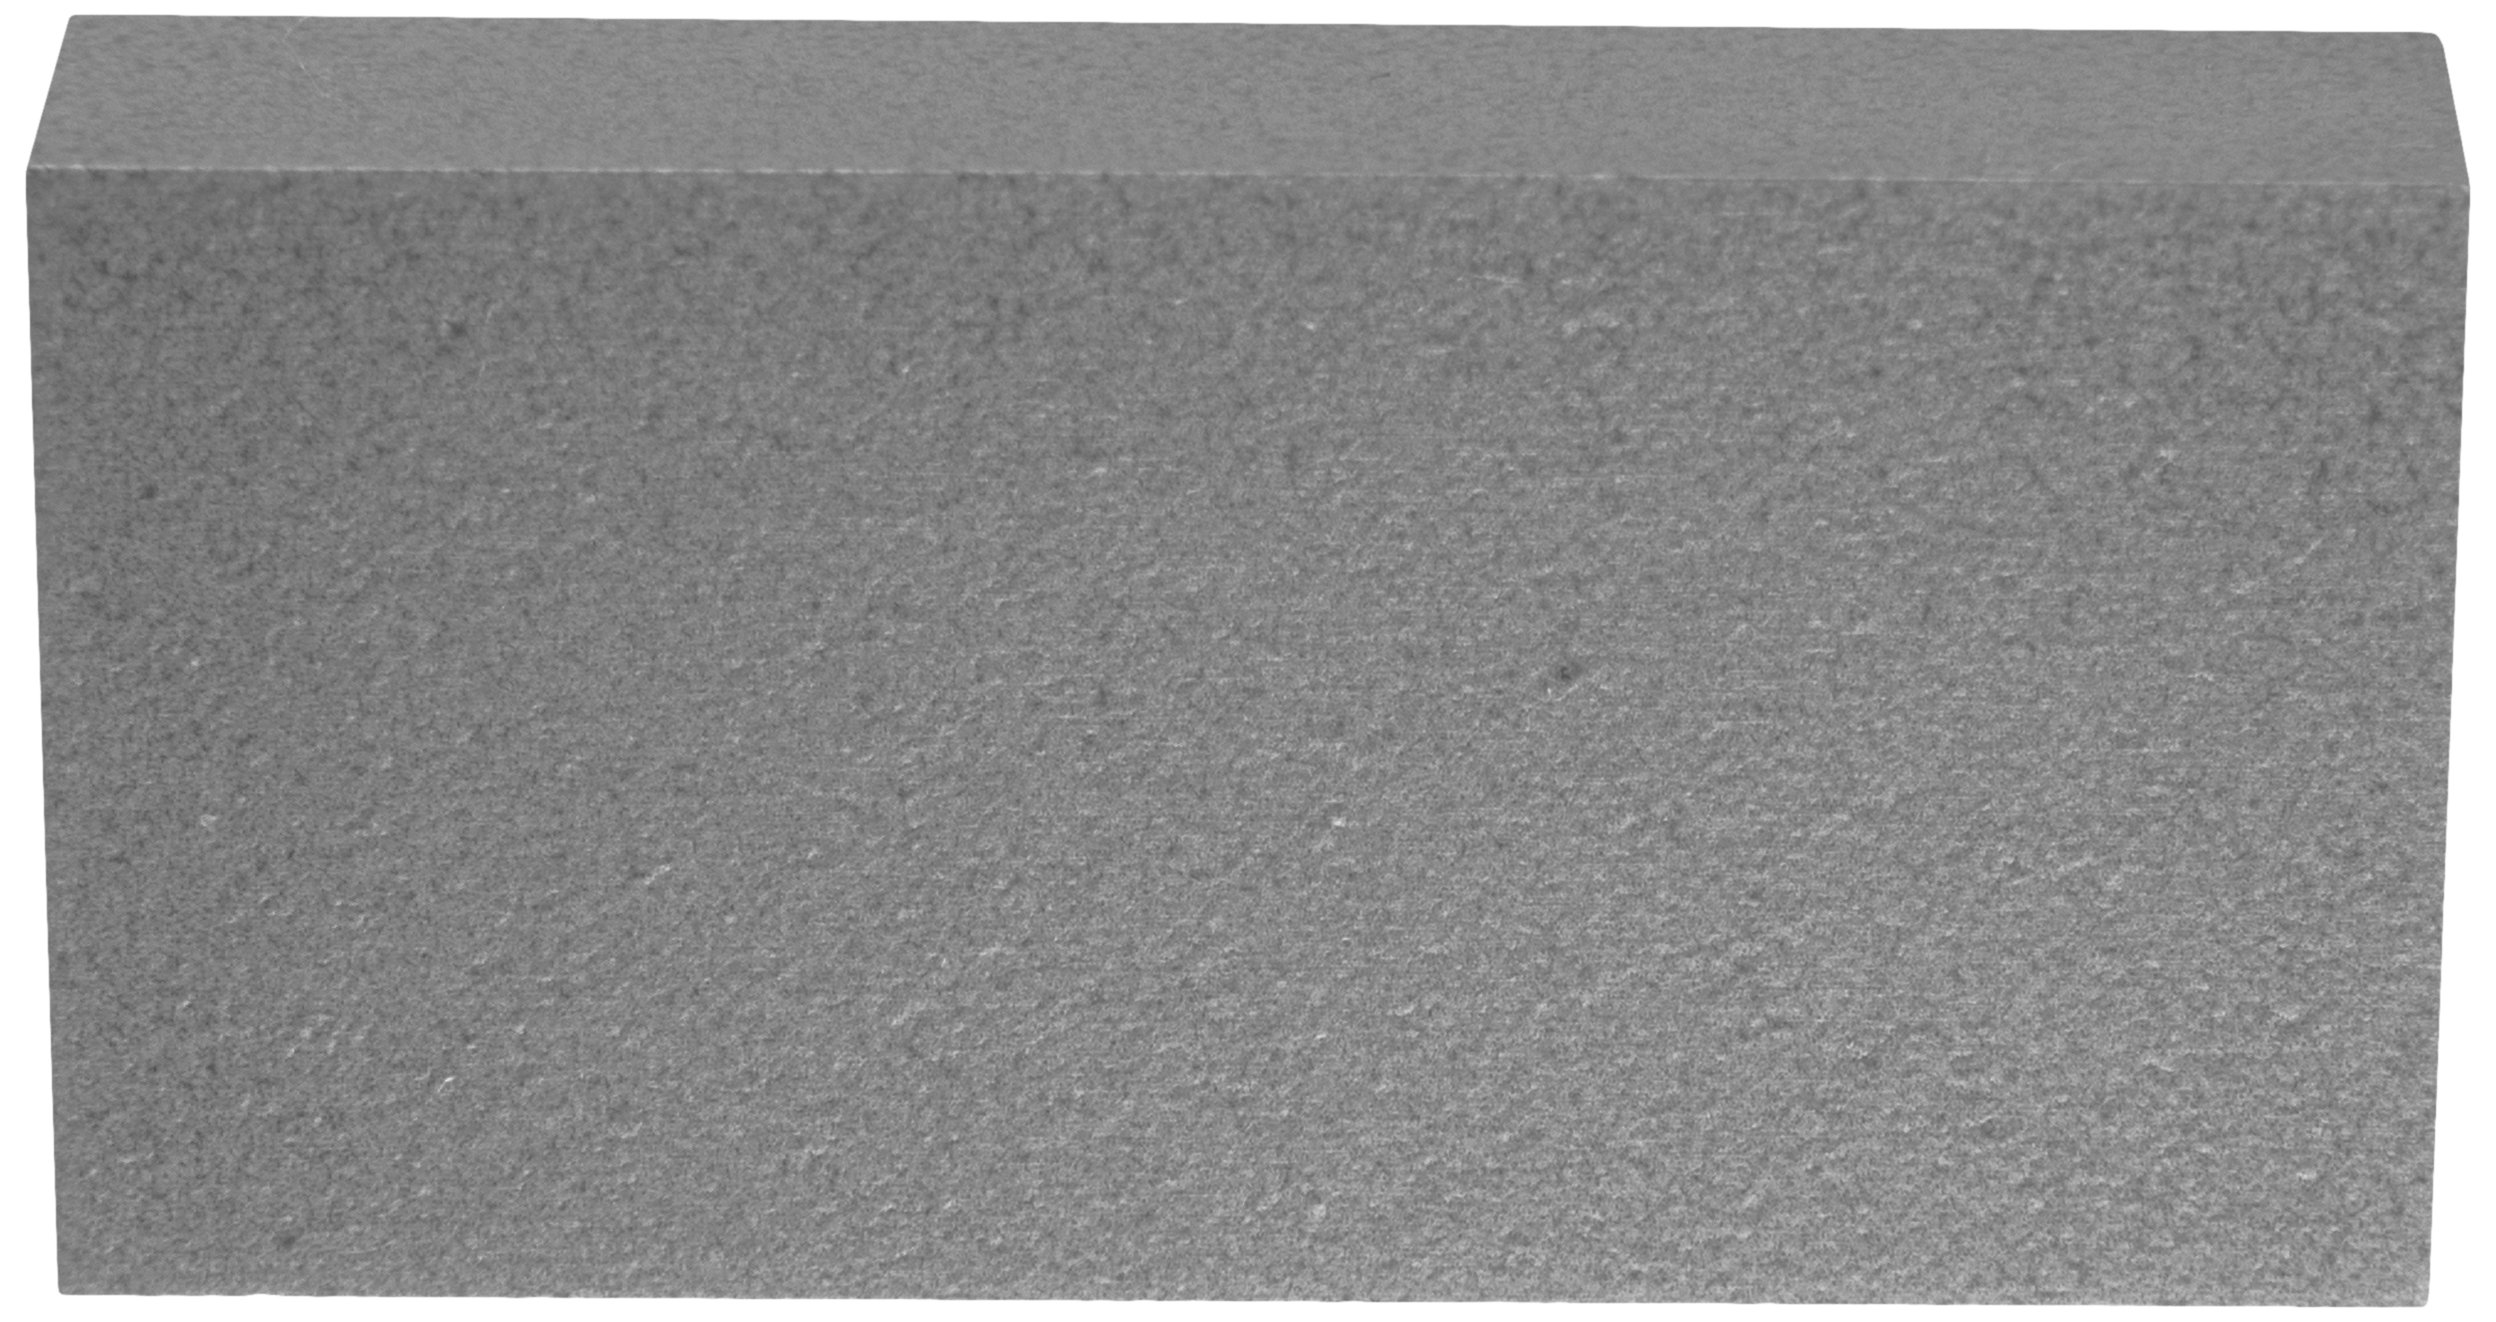 Ultra-Met STB416A-Z9 Carbide Blank (Unground), Grade Z9, 1'' Length x 1/2'' Width x 1/8'' Thickness (Pack of 10)